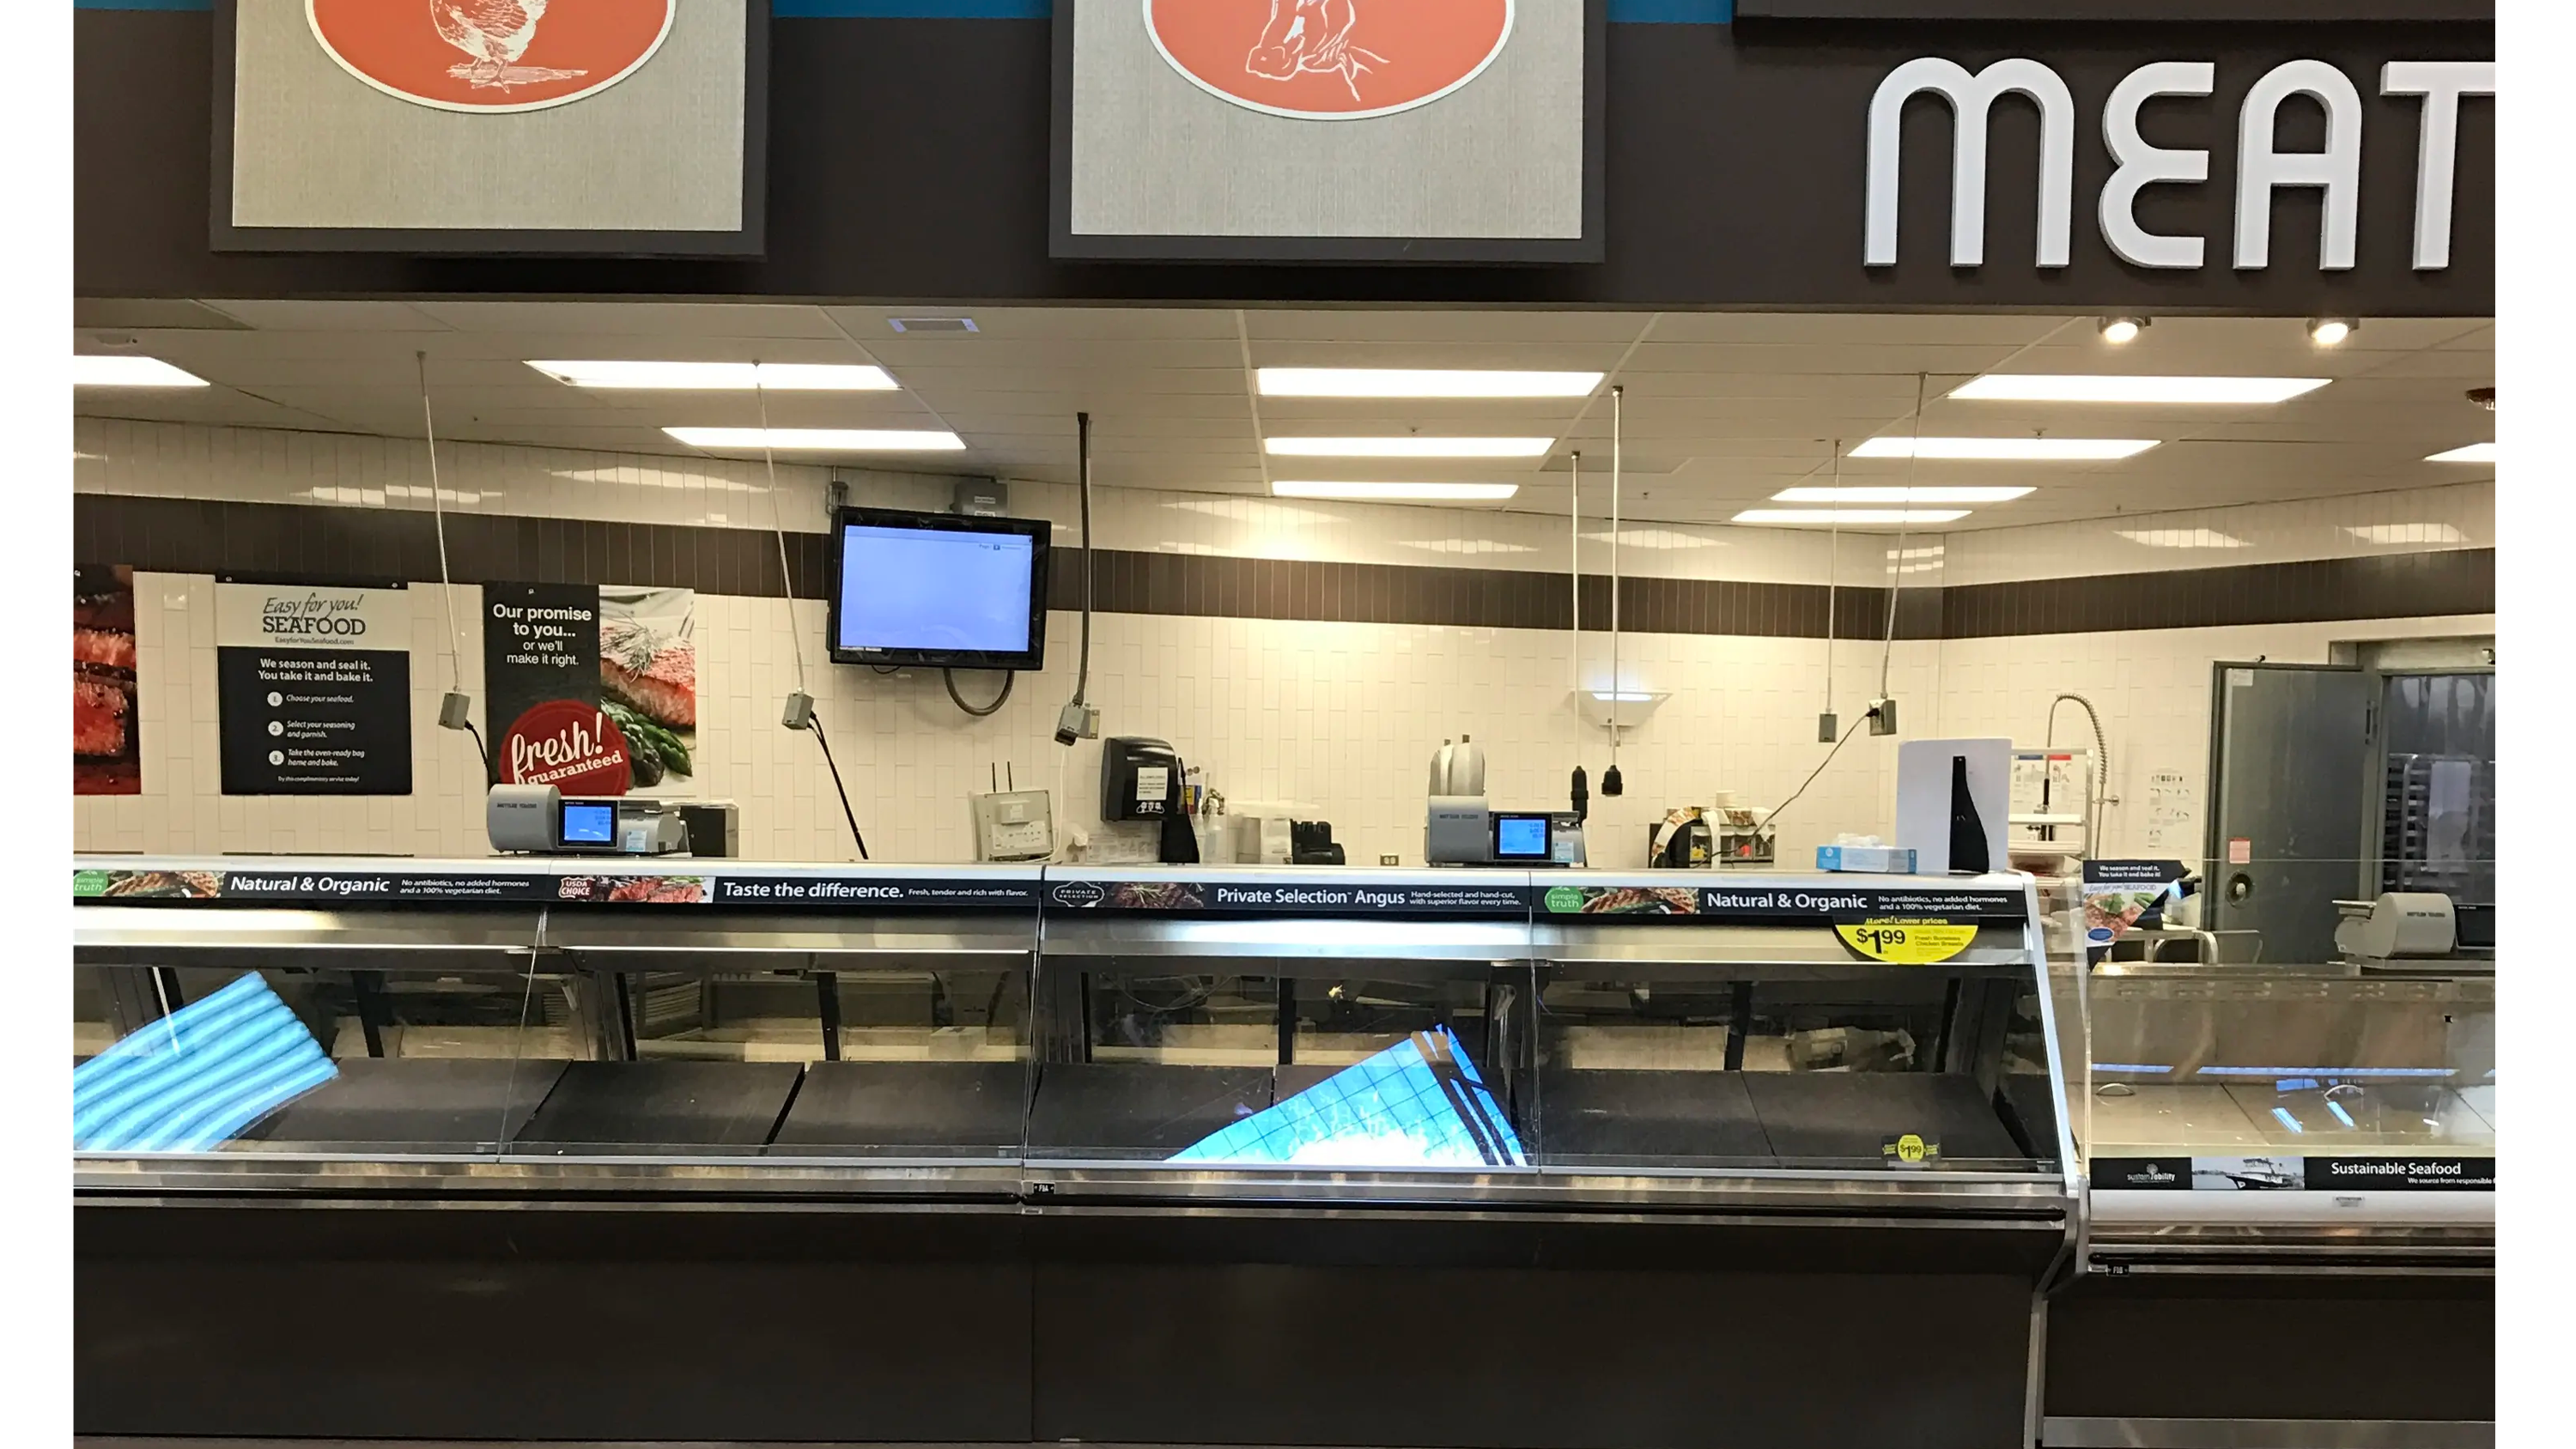 Food processing digital signage enclosure